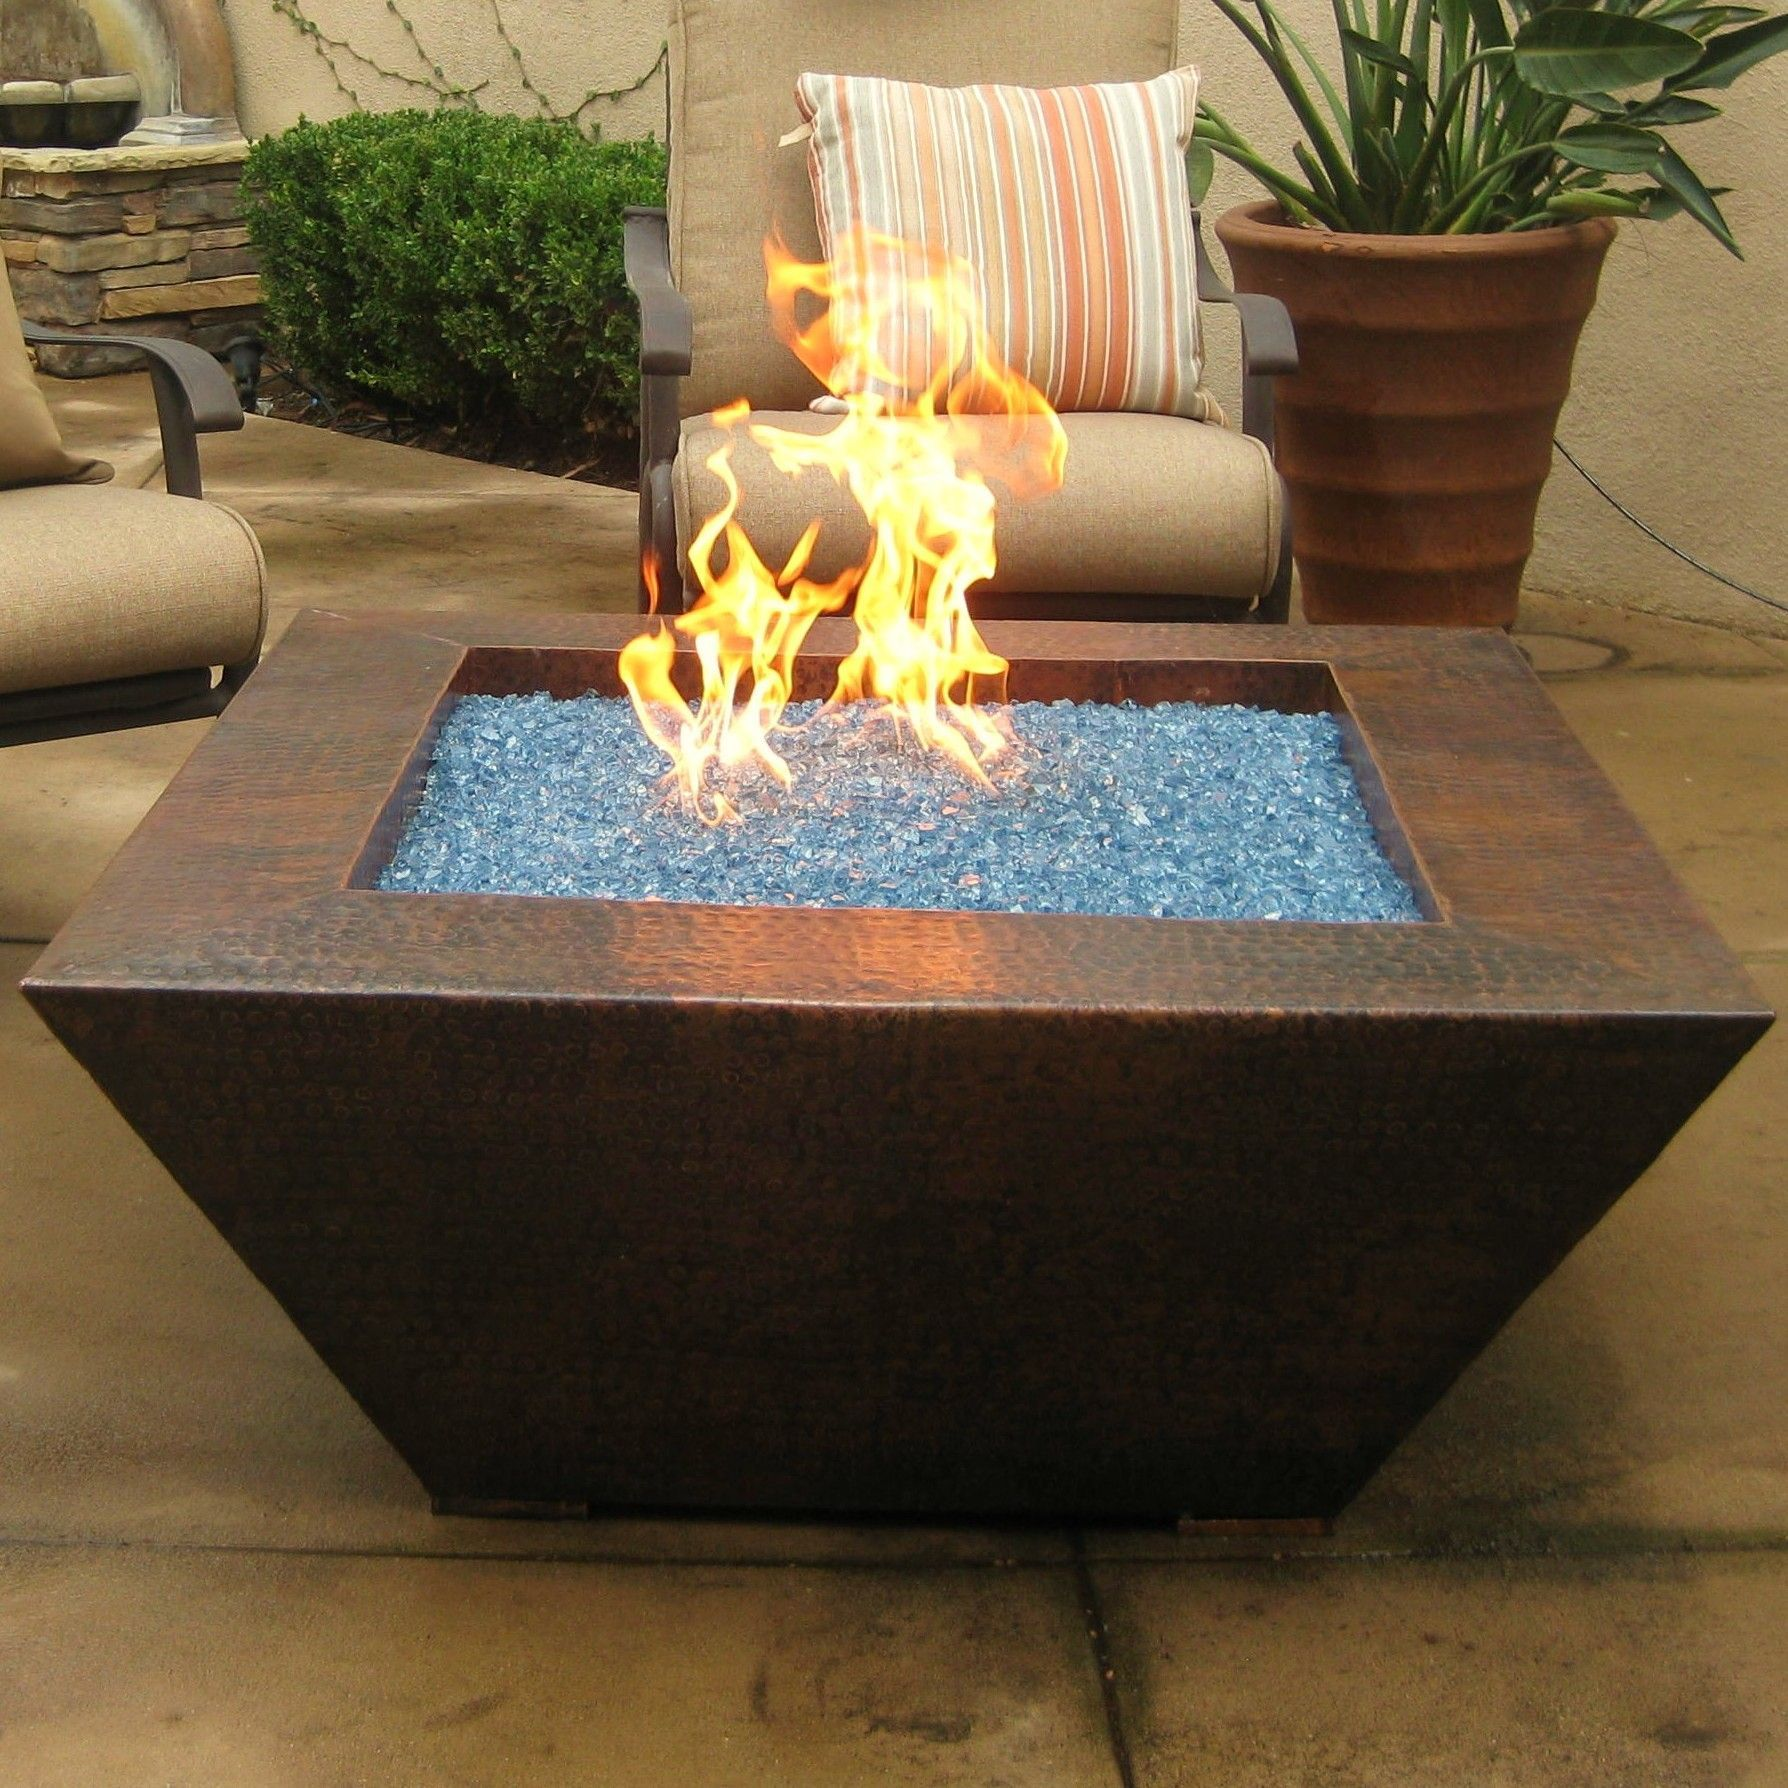 Features Note All Manual Fire Pit Systems Come Complete With Manual Burner Insert Bowl Key Valve And Suppor Outdoor Fire Modern Fire Pit Outdoor Fire Pit